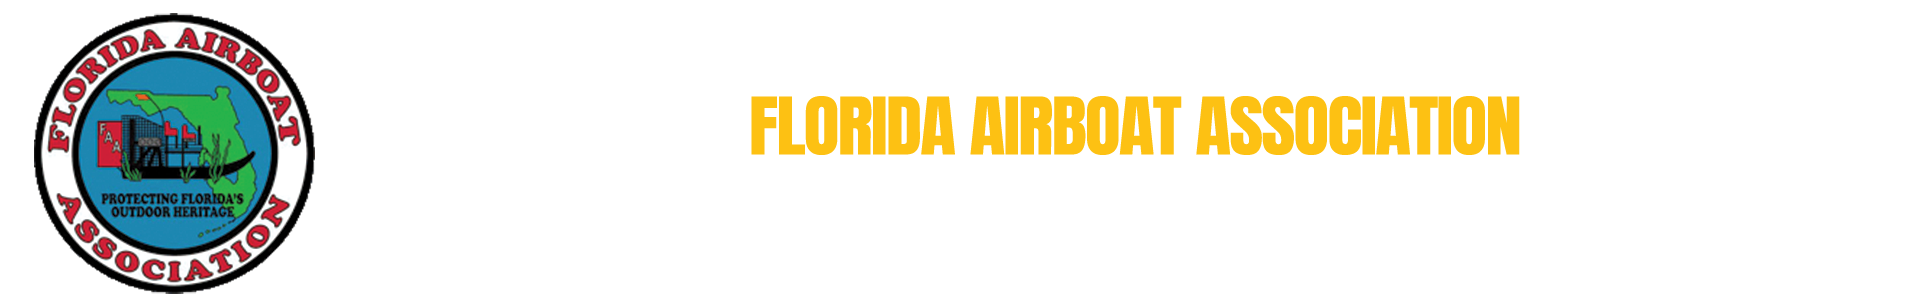 Florida Airboat Association Logo